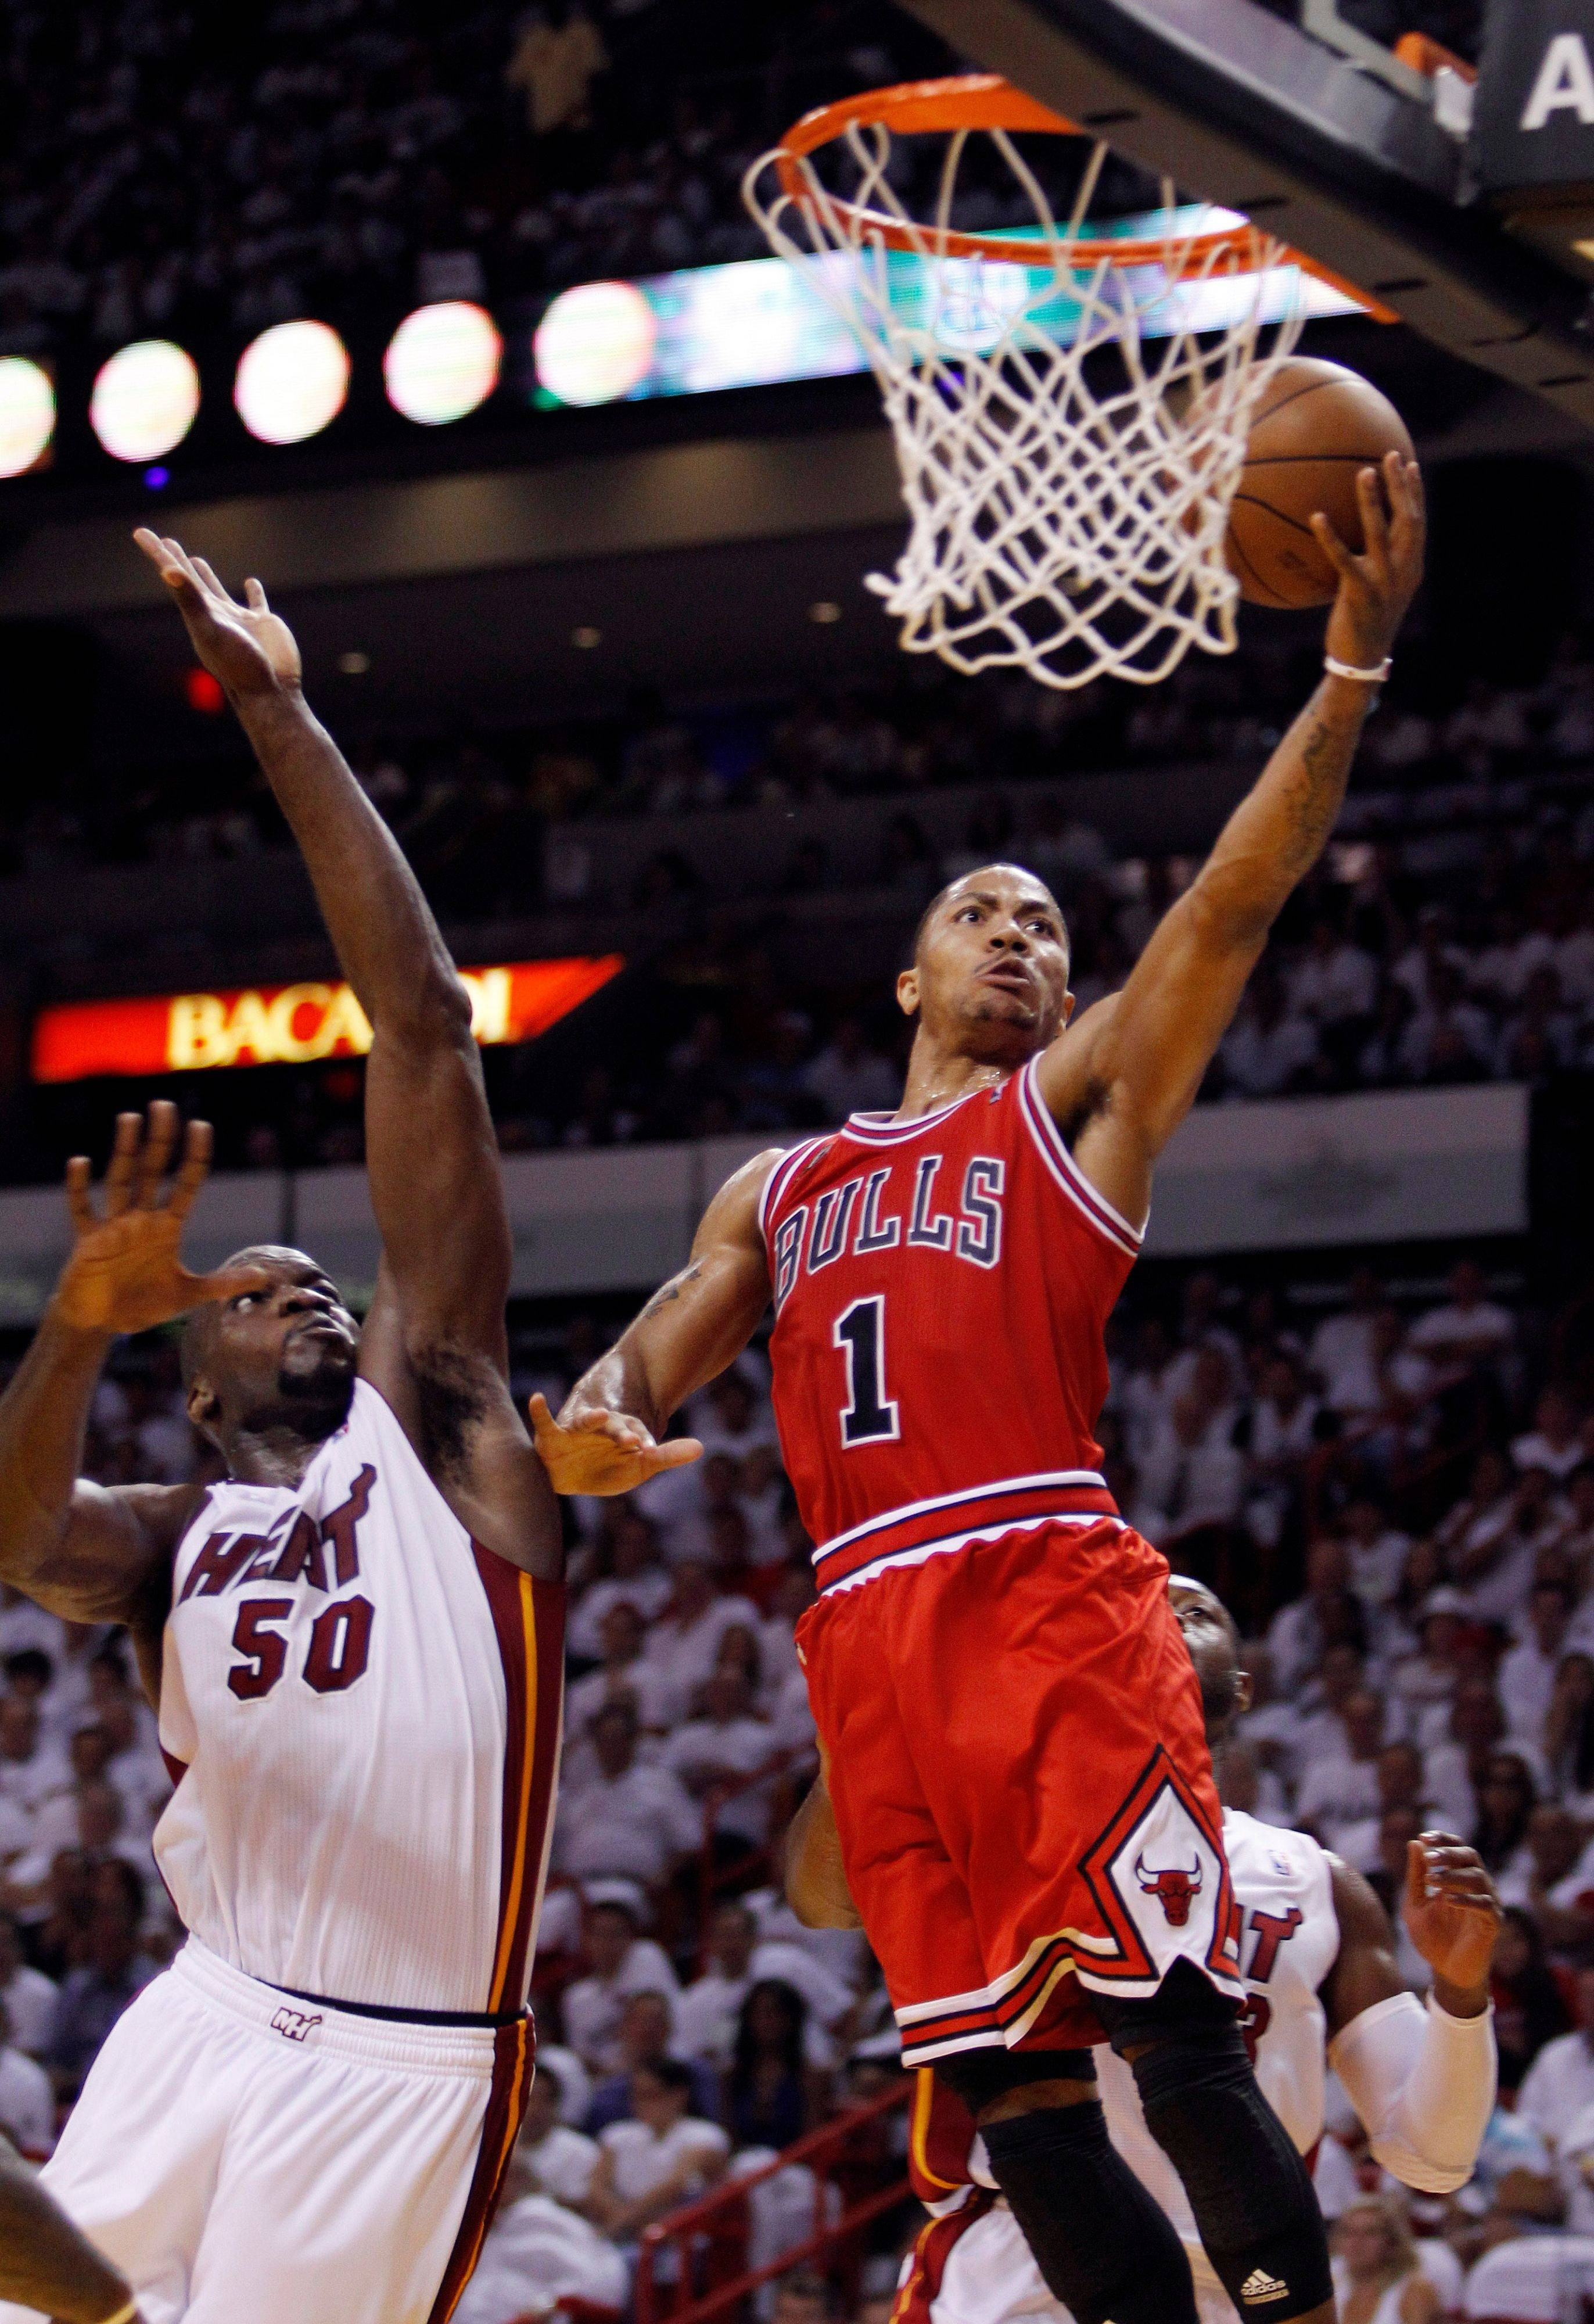 Chicago Bulls' Derrick Rose (1) goes for a basket over Miami Heat's Joel Anthony (50) and Dwyane Wade (3) during the second half of Game 3 of the NBA Eastern Conference finals basketball series in Miami, Sunday, May 22, 2011.